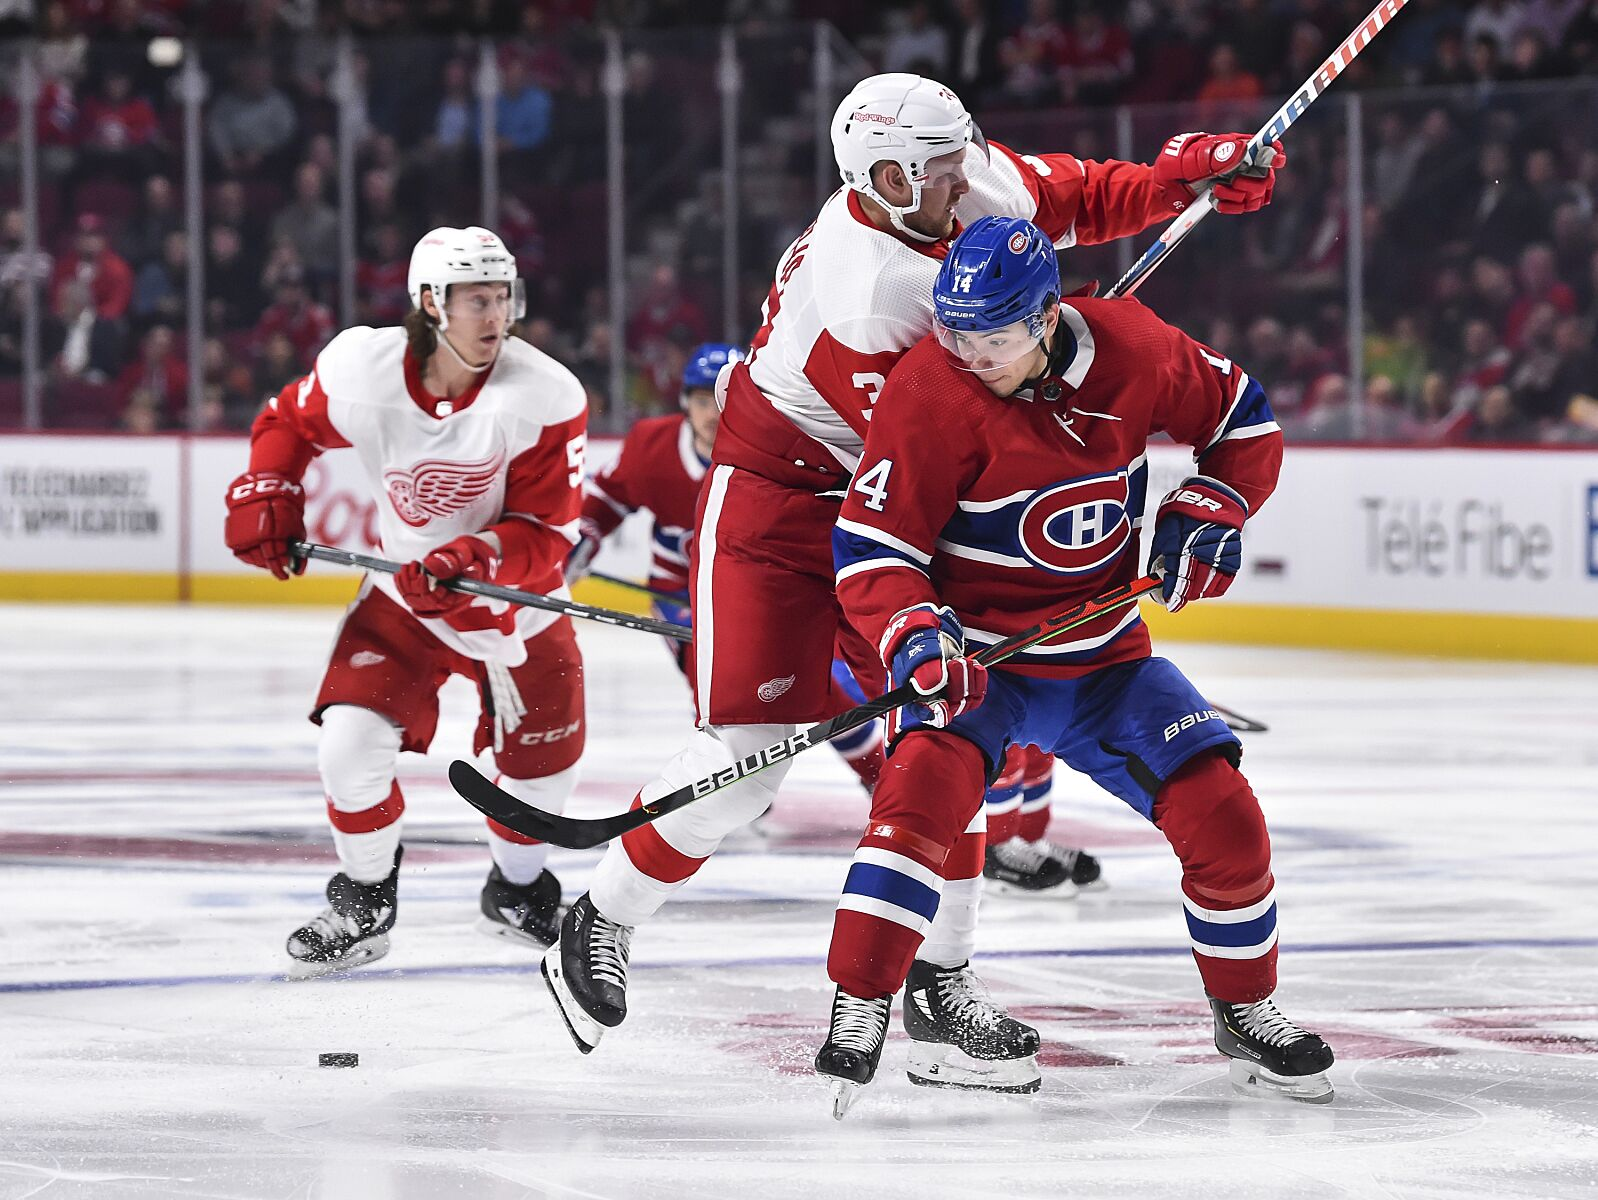 Montreal Canadiens: What do the stats say of Nick Suzuki and Cale Fleury?